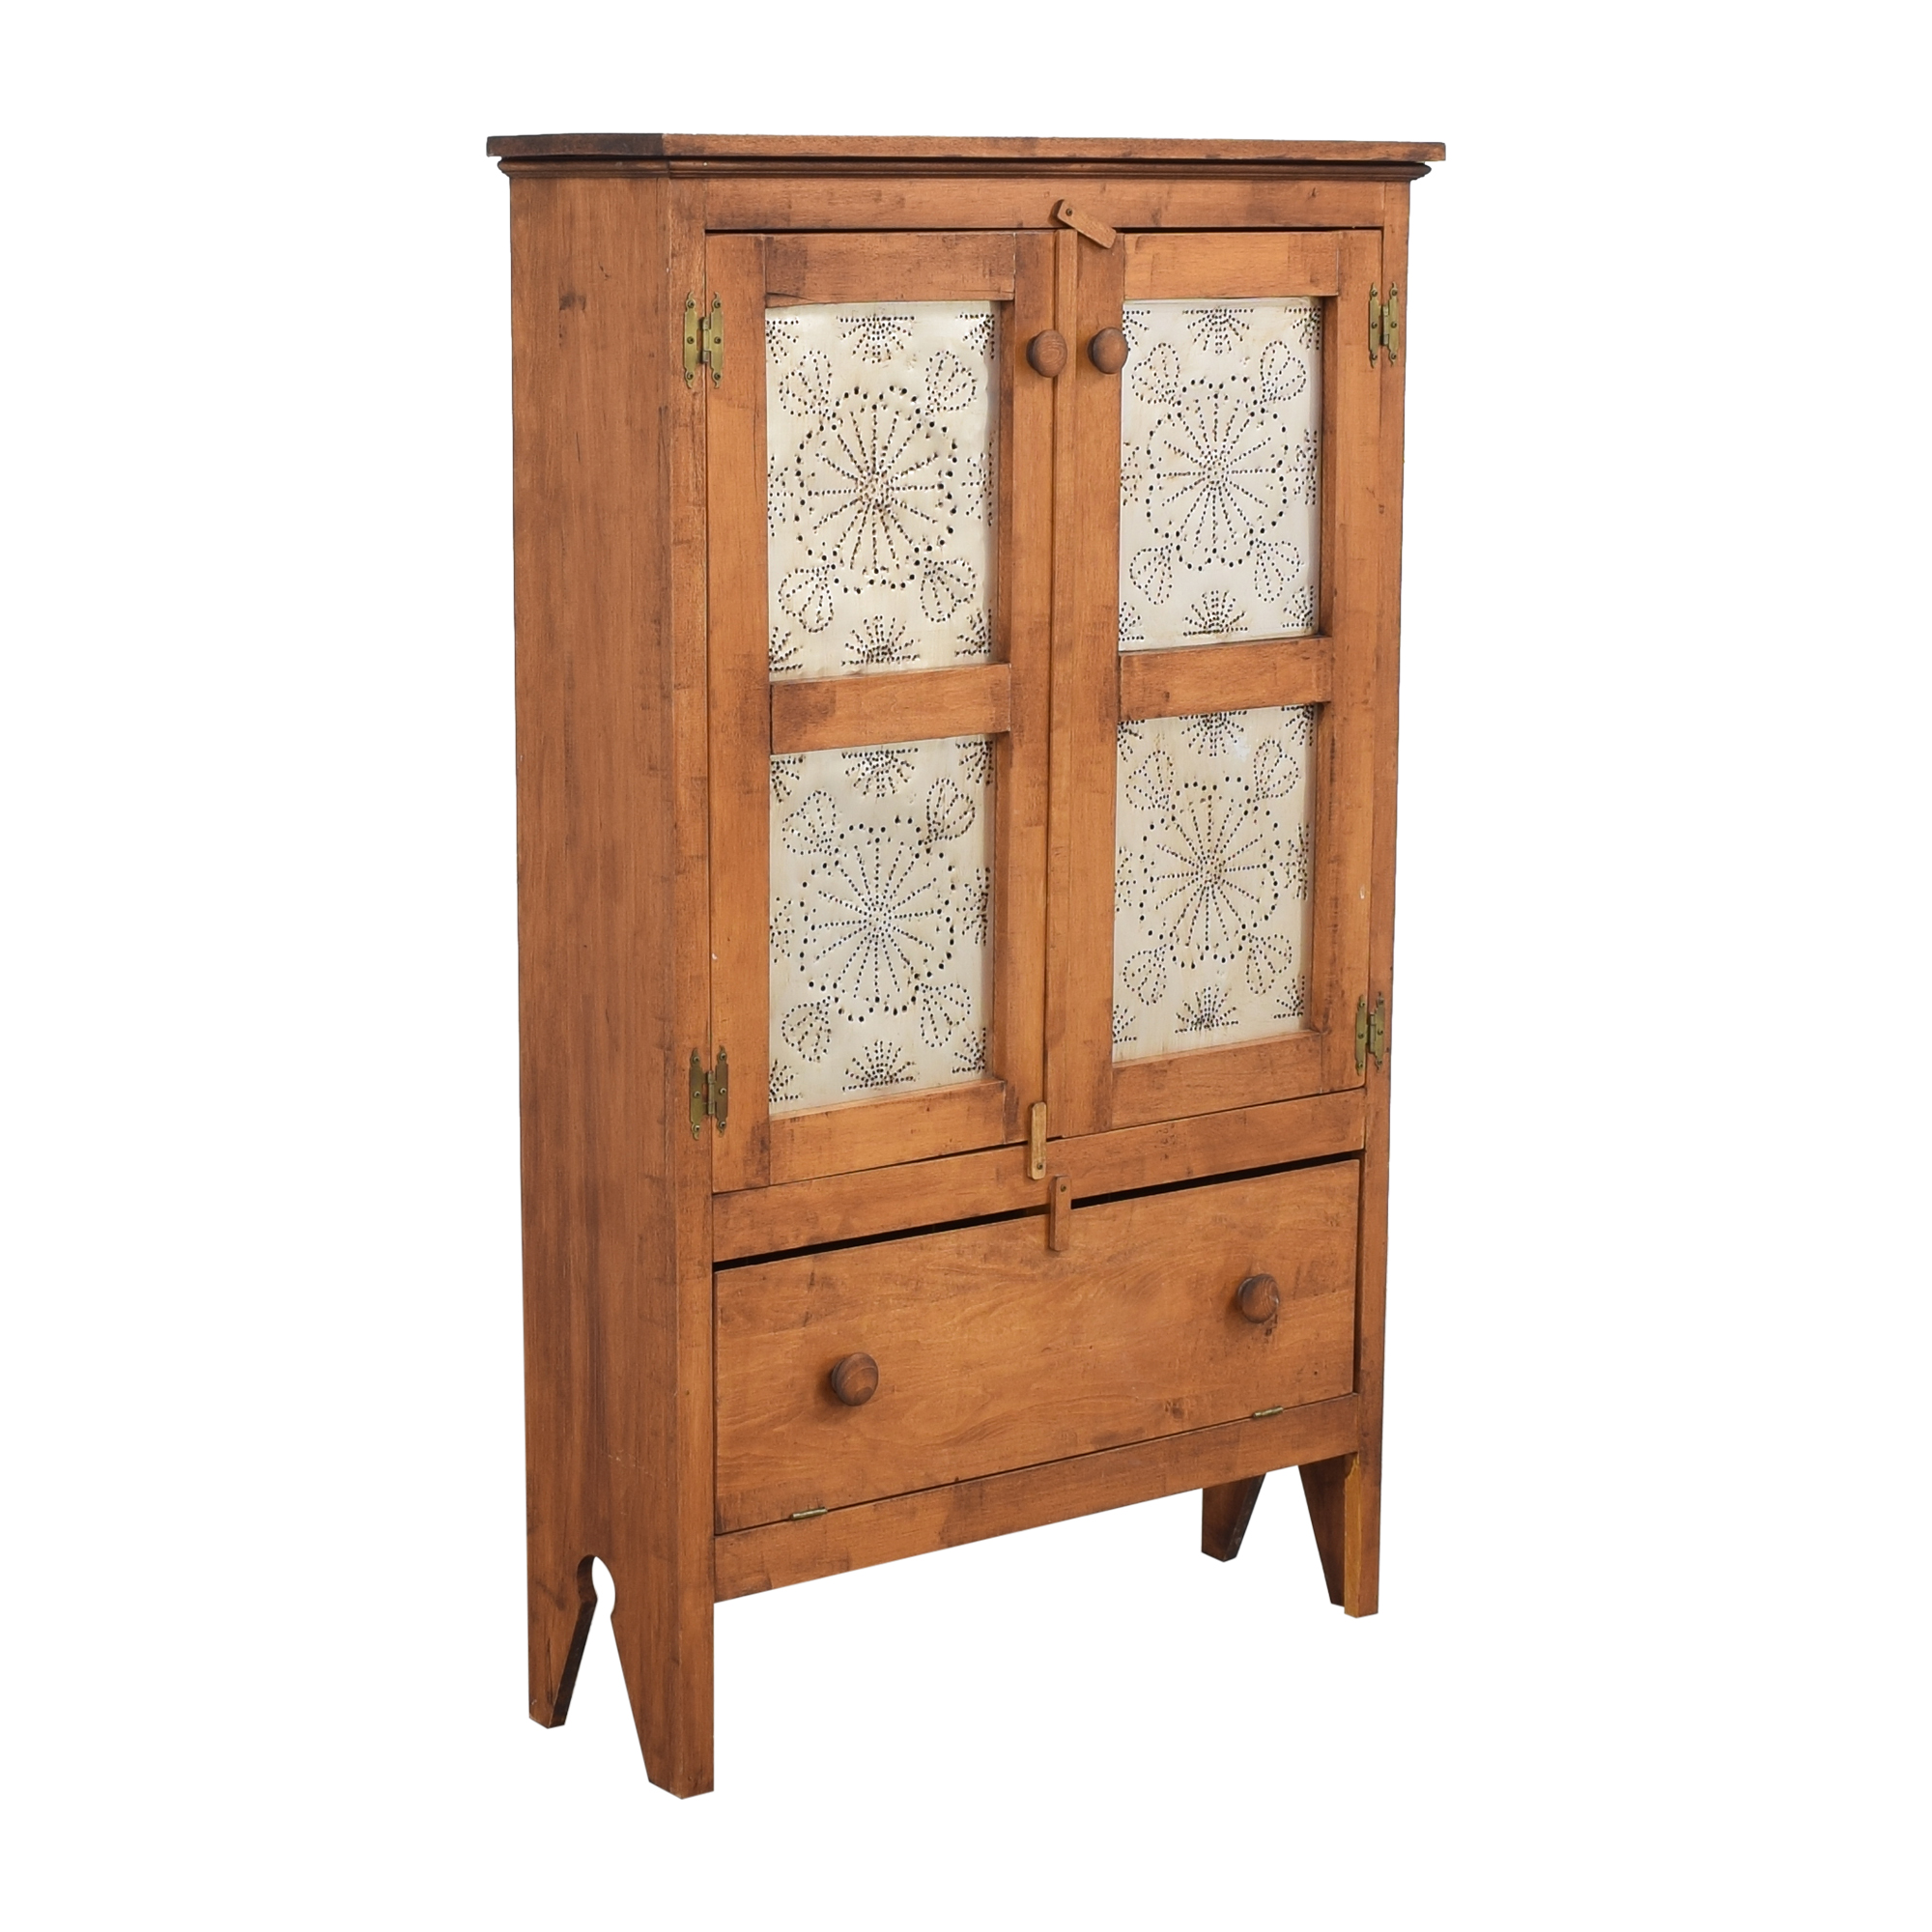 Punch Tin Door Pie Safe / Cabinets & Sideboards